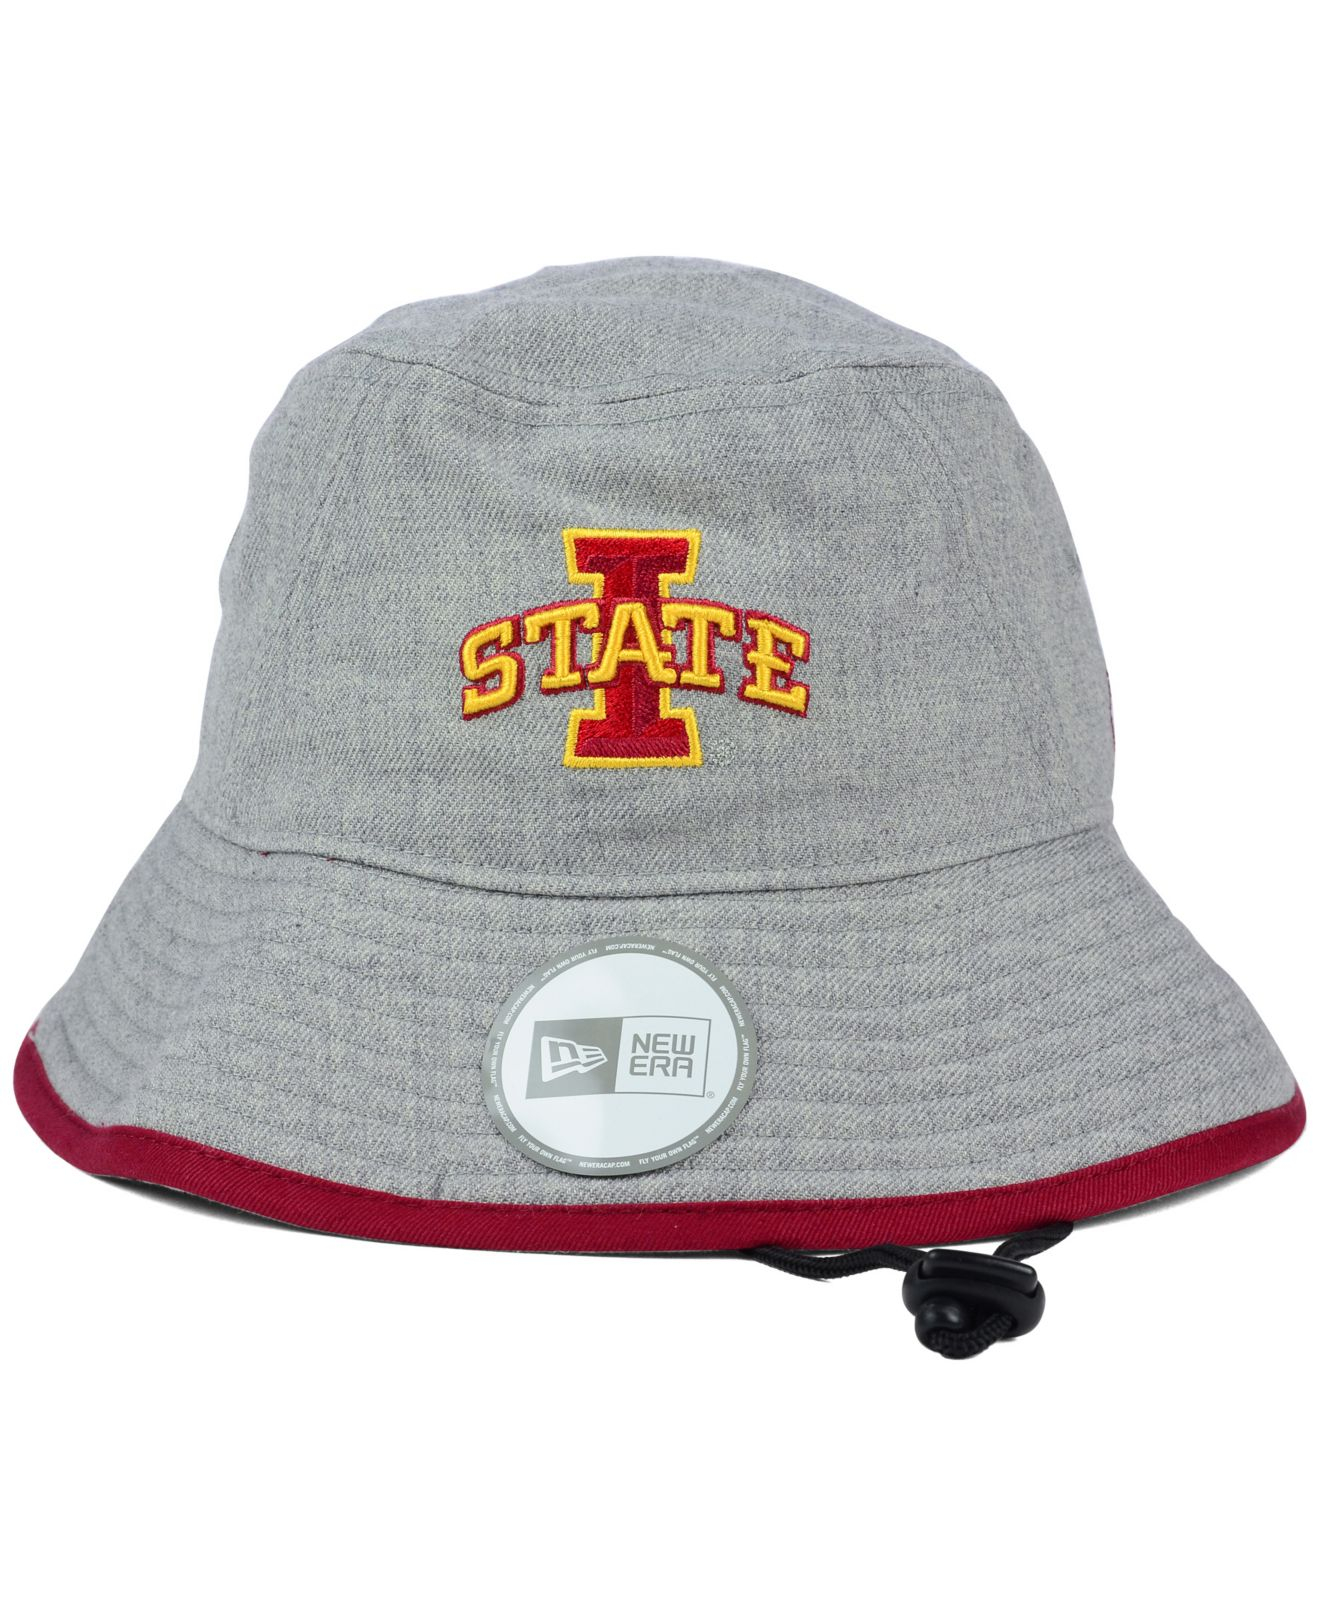 size 40 48cd8 d2cbc ... sweden lyst ktz iowa state cyclones tip bucket hat in gray 34e8d fe240